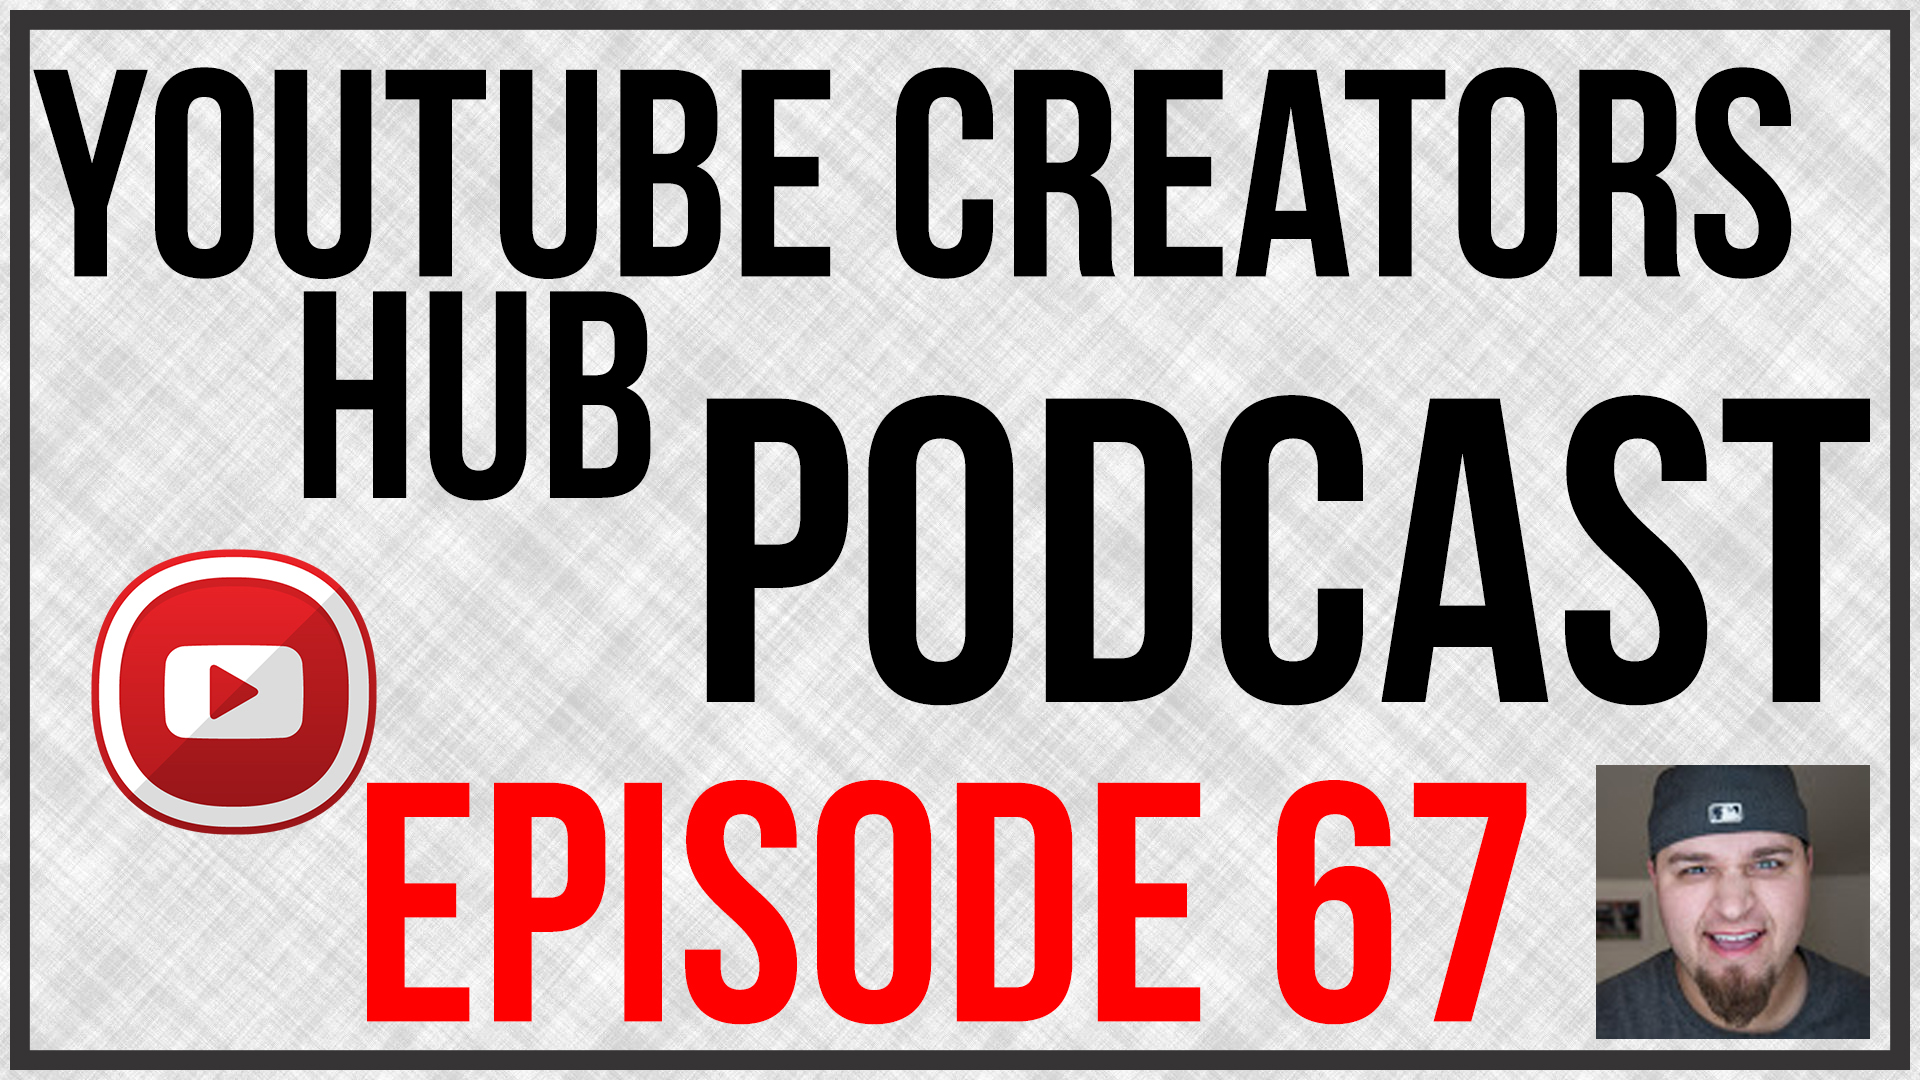 youtube creators hub podcast episode 67